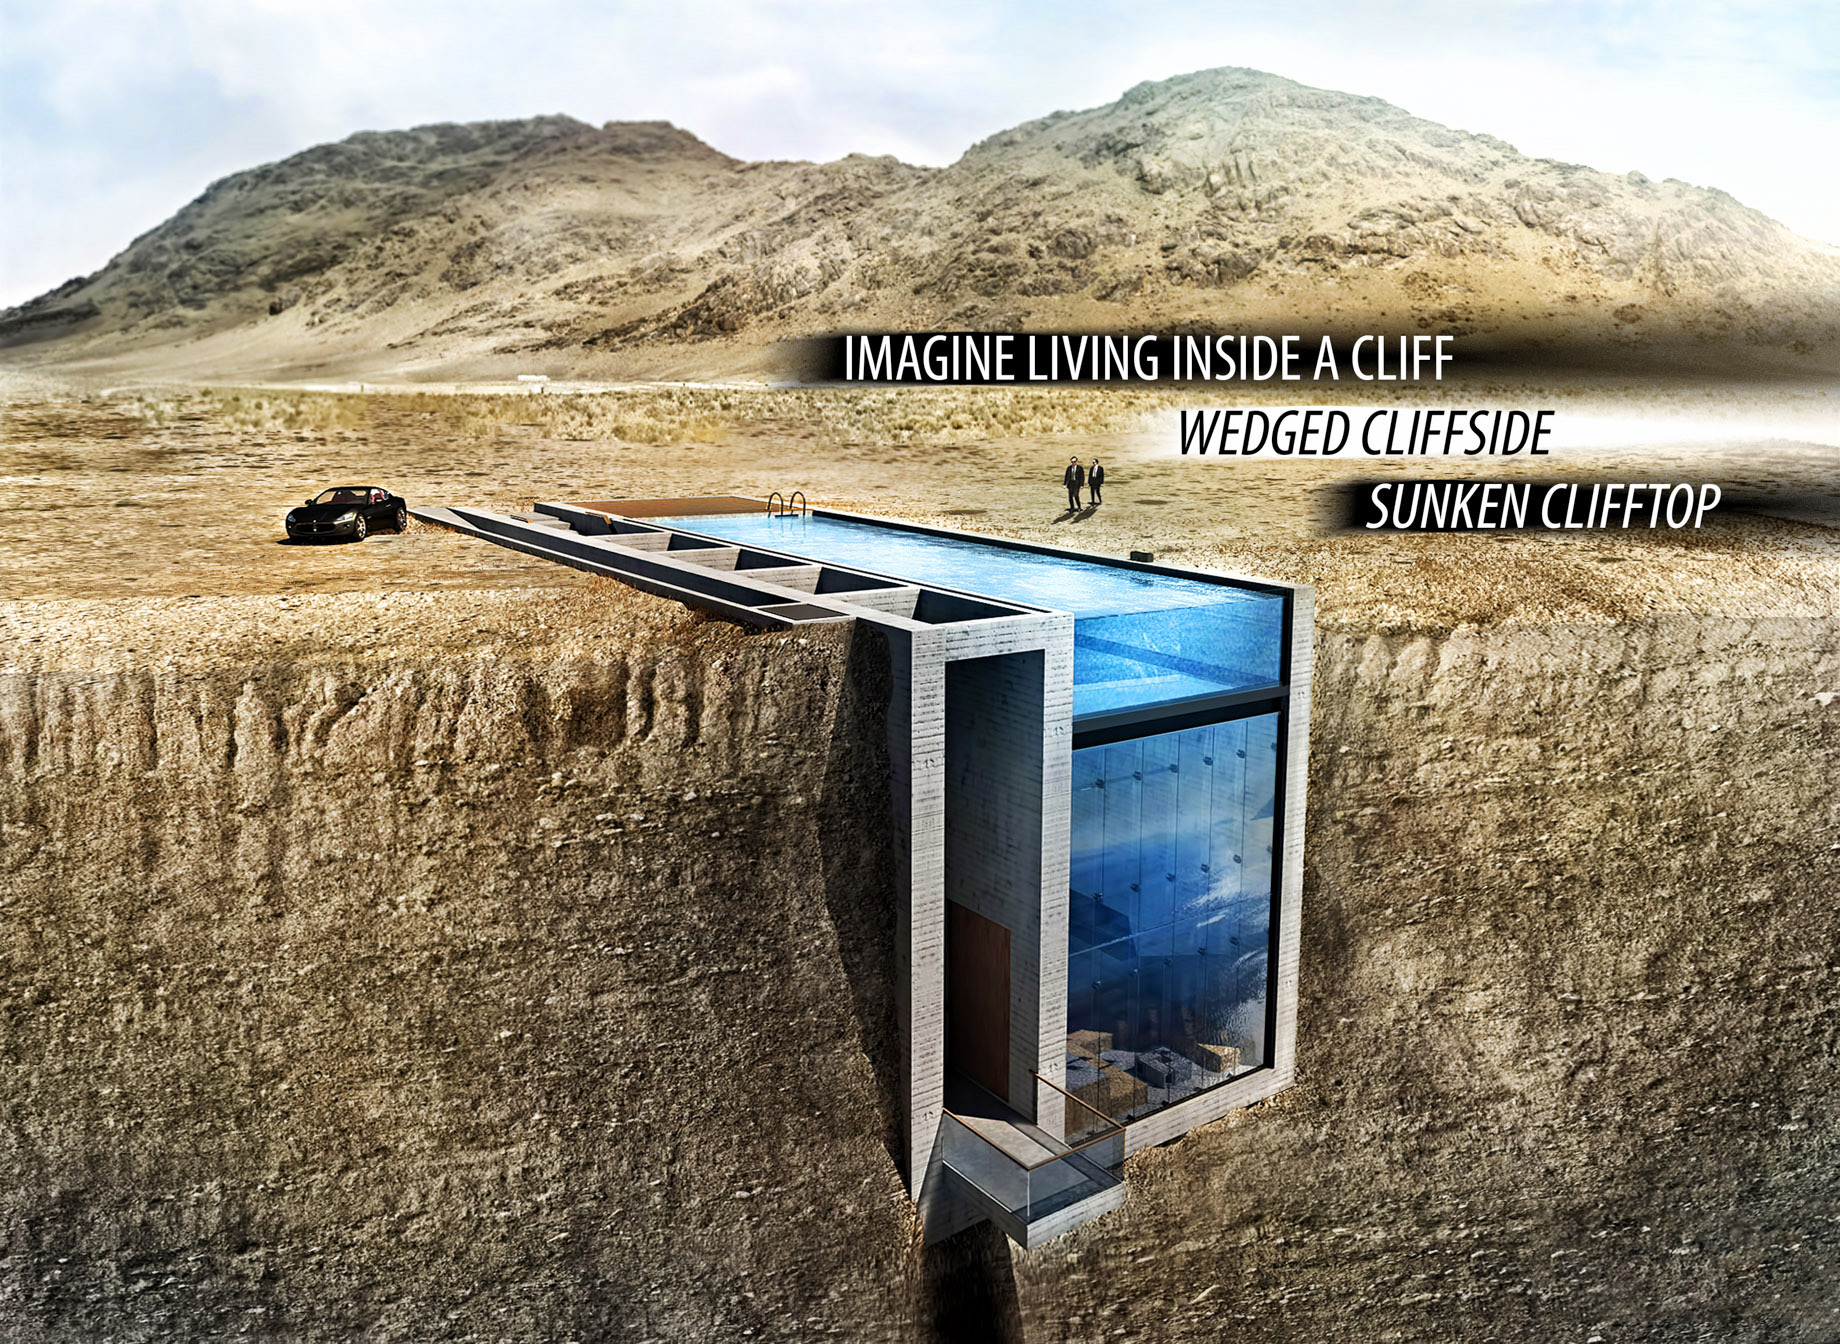 Imagine Living Inside a Cliff - Luxury Home Wedged Cliffside, Sunken Clifftop